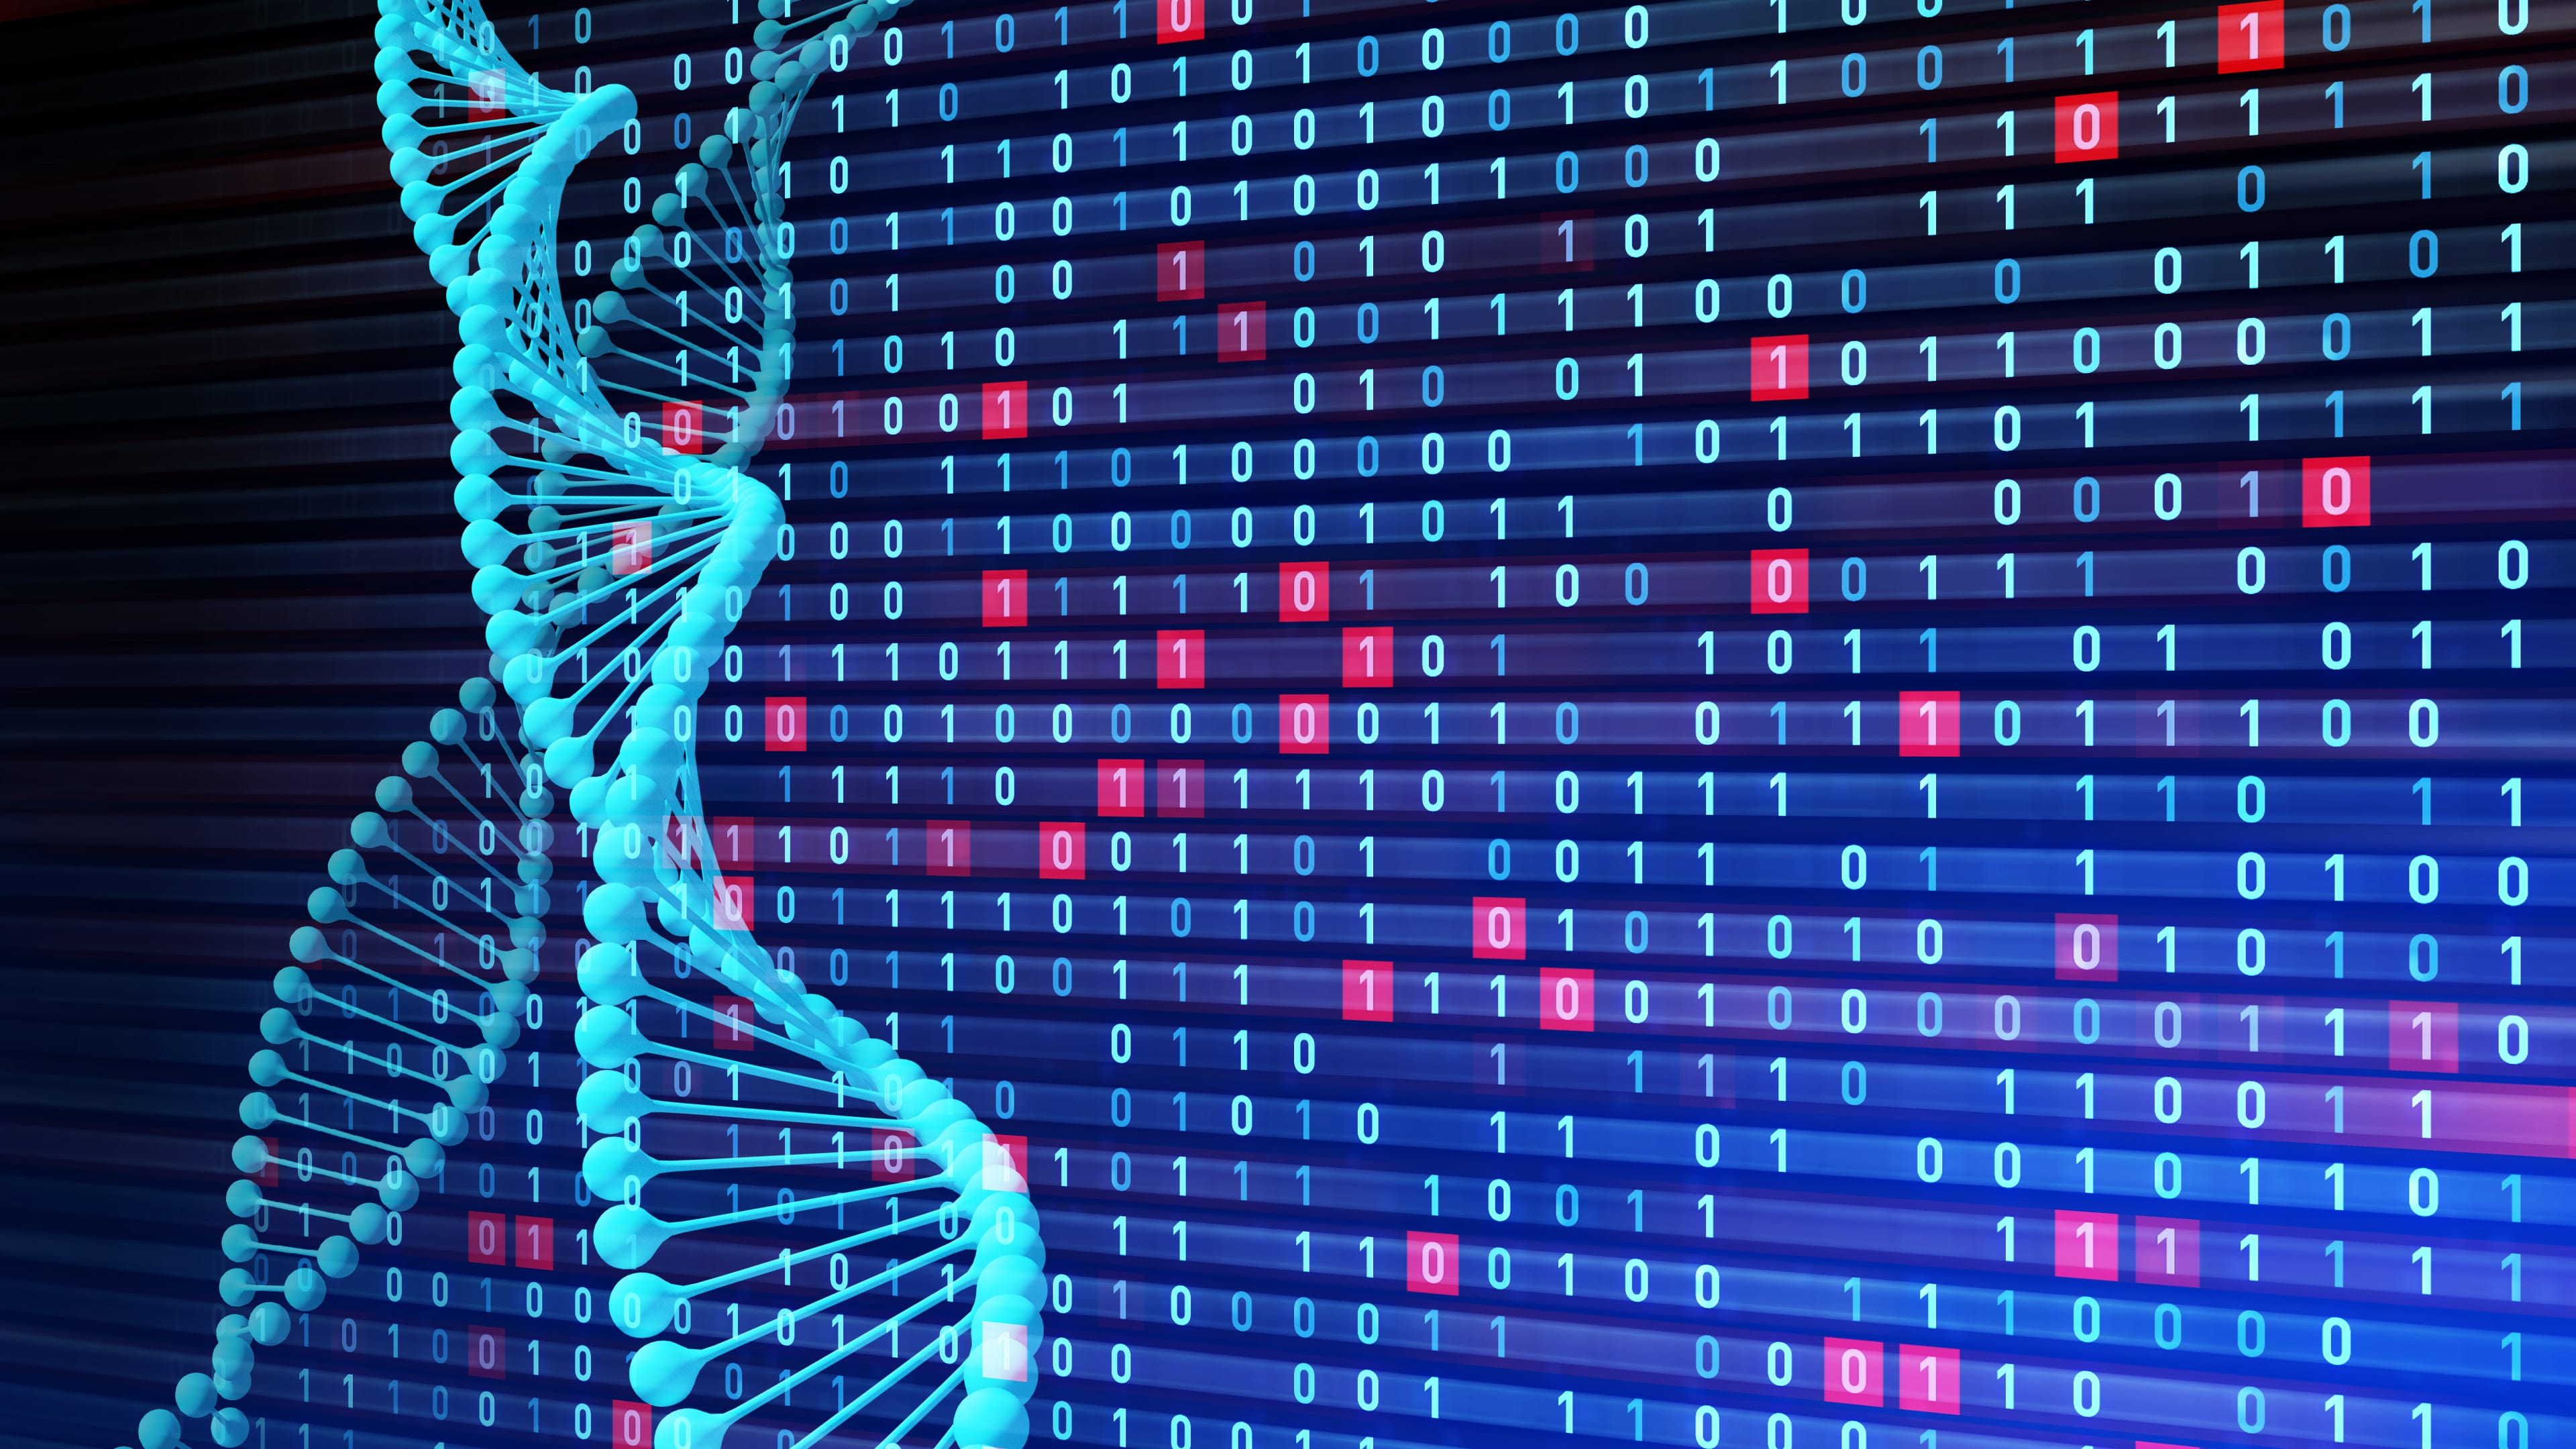 A DNA sequence imposed over binary code, in reference to MedTech